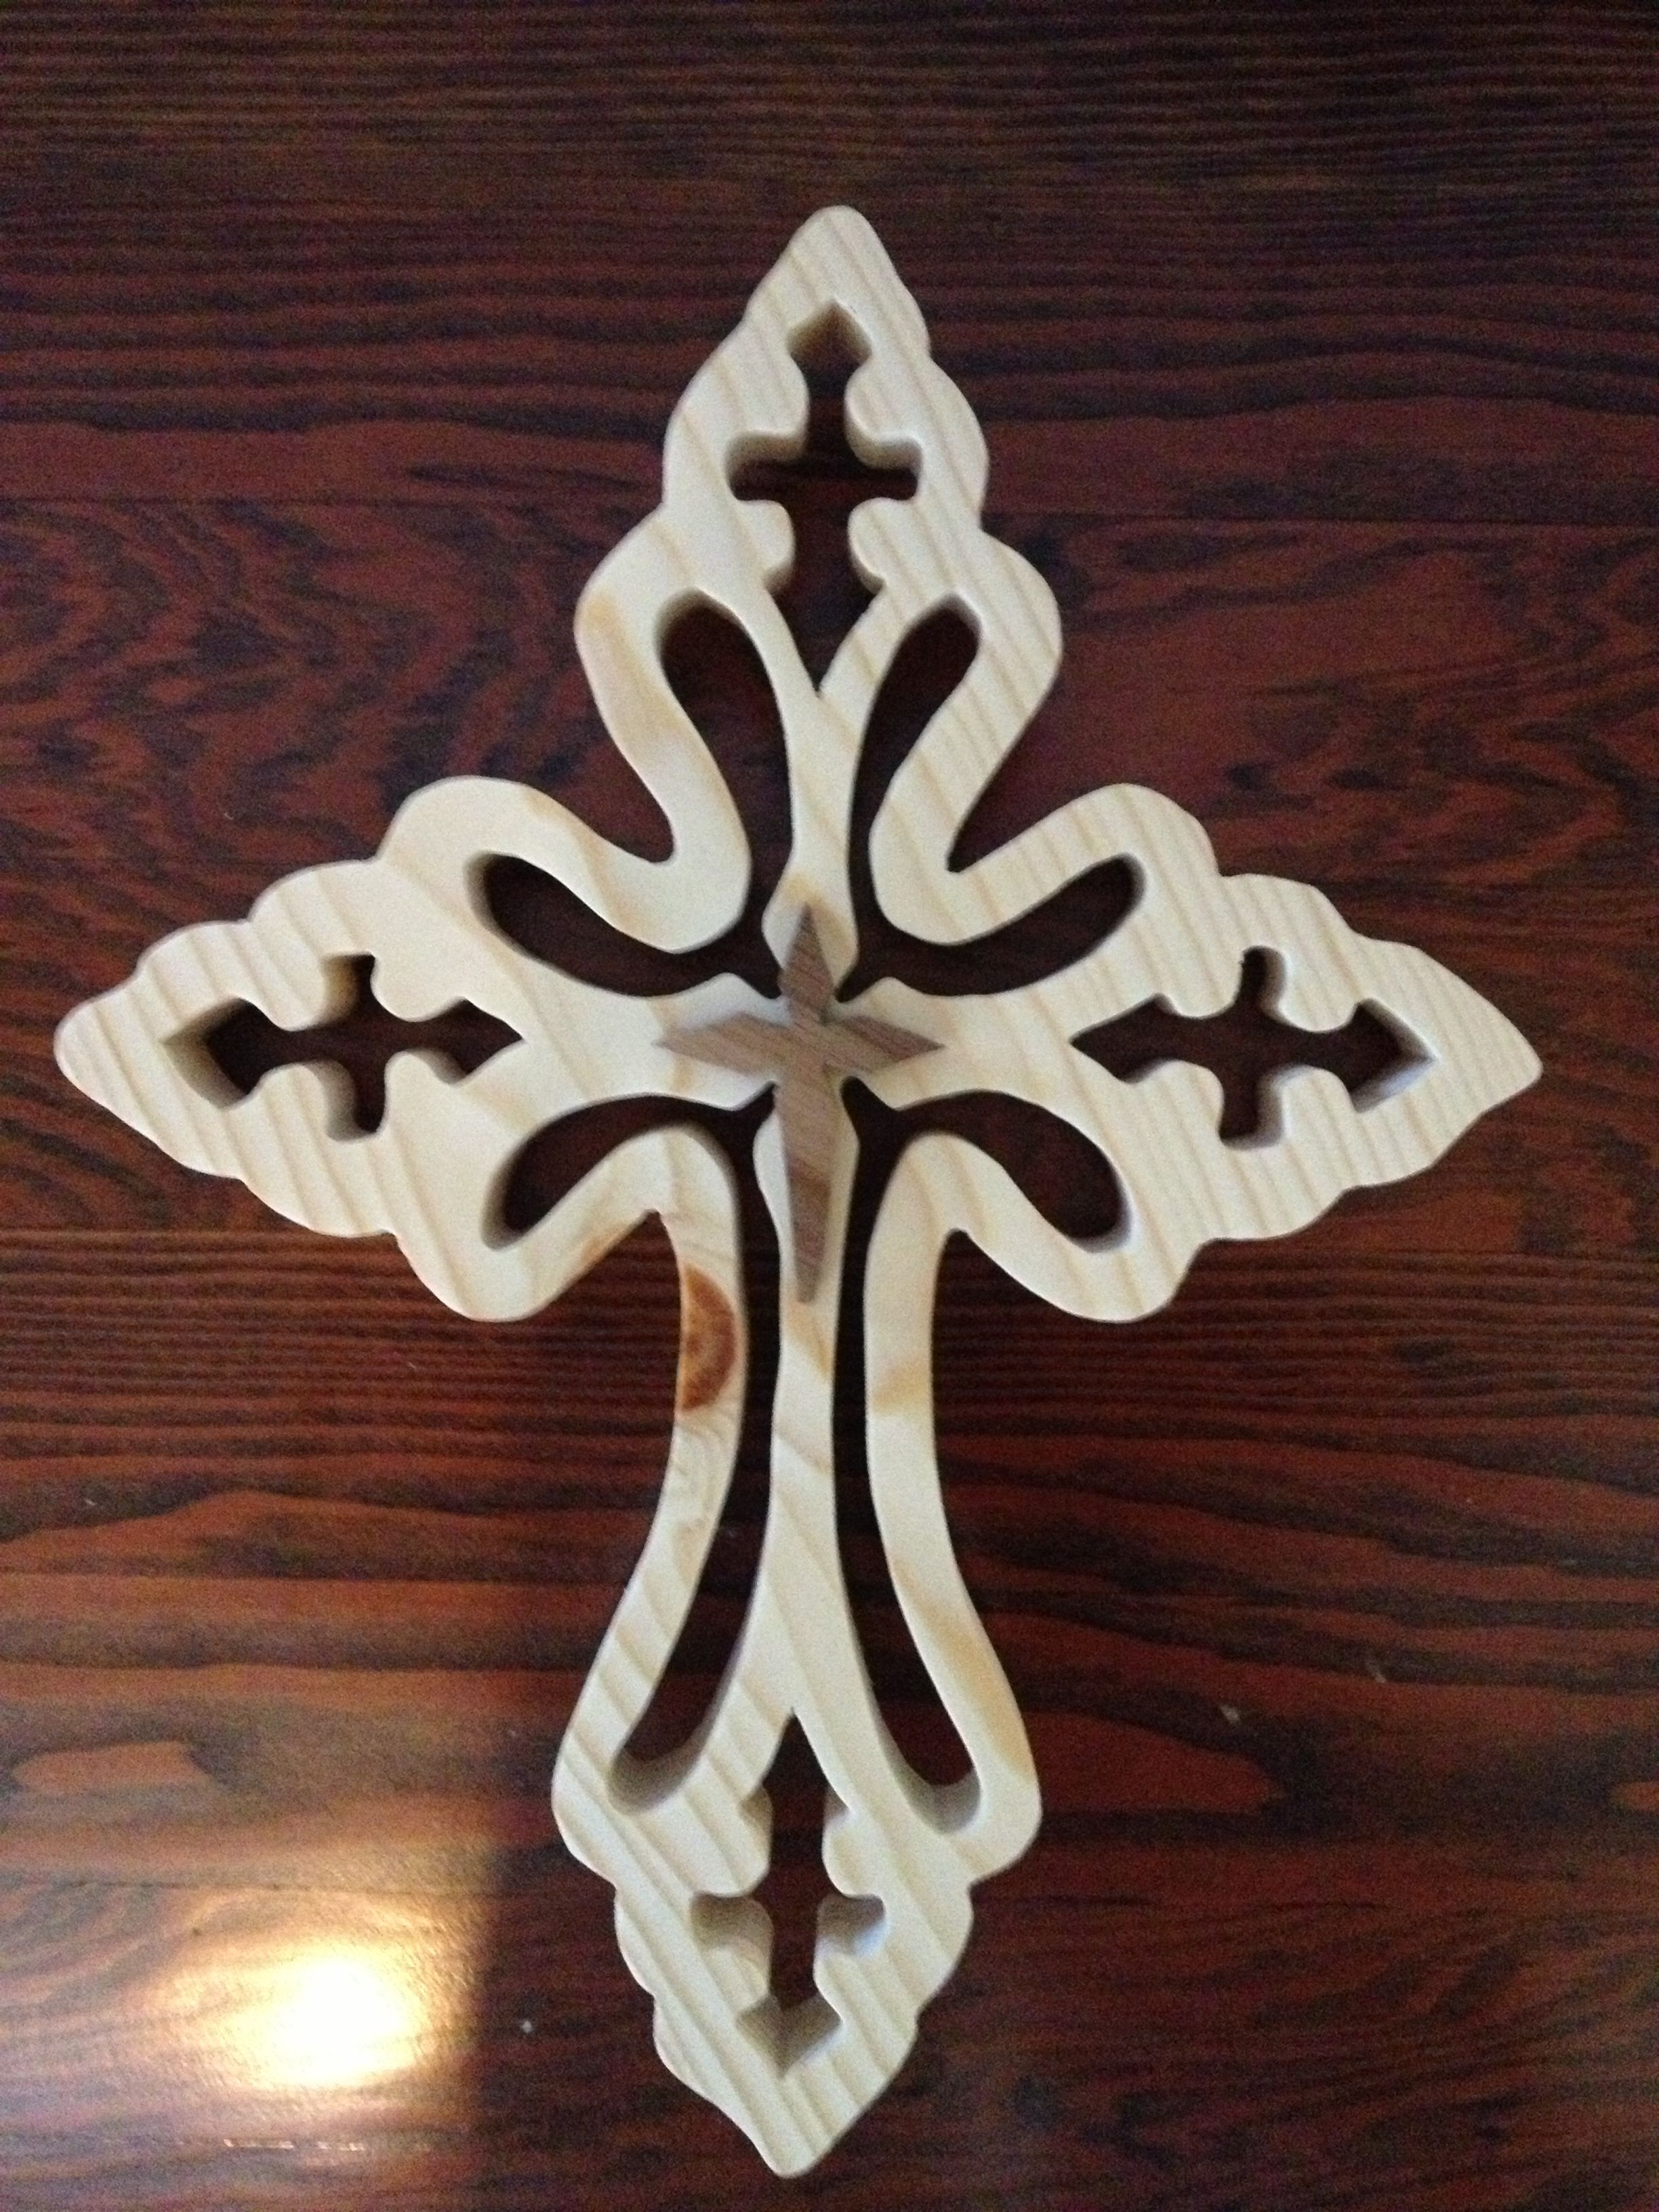 Decorative Wood cross I made | wood work and laser cutting ...